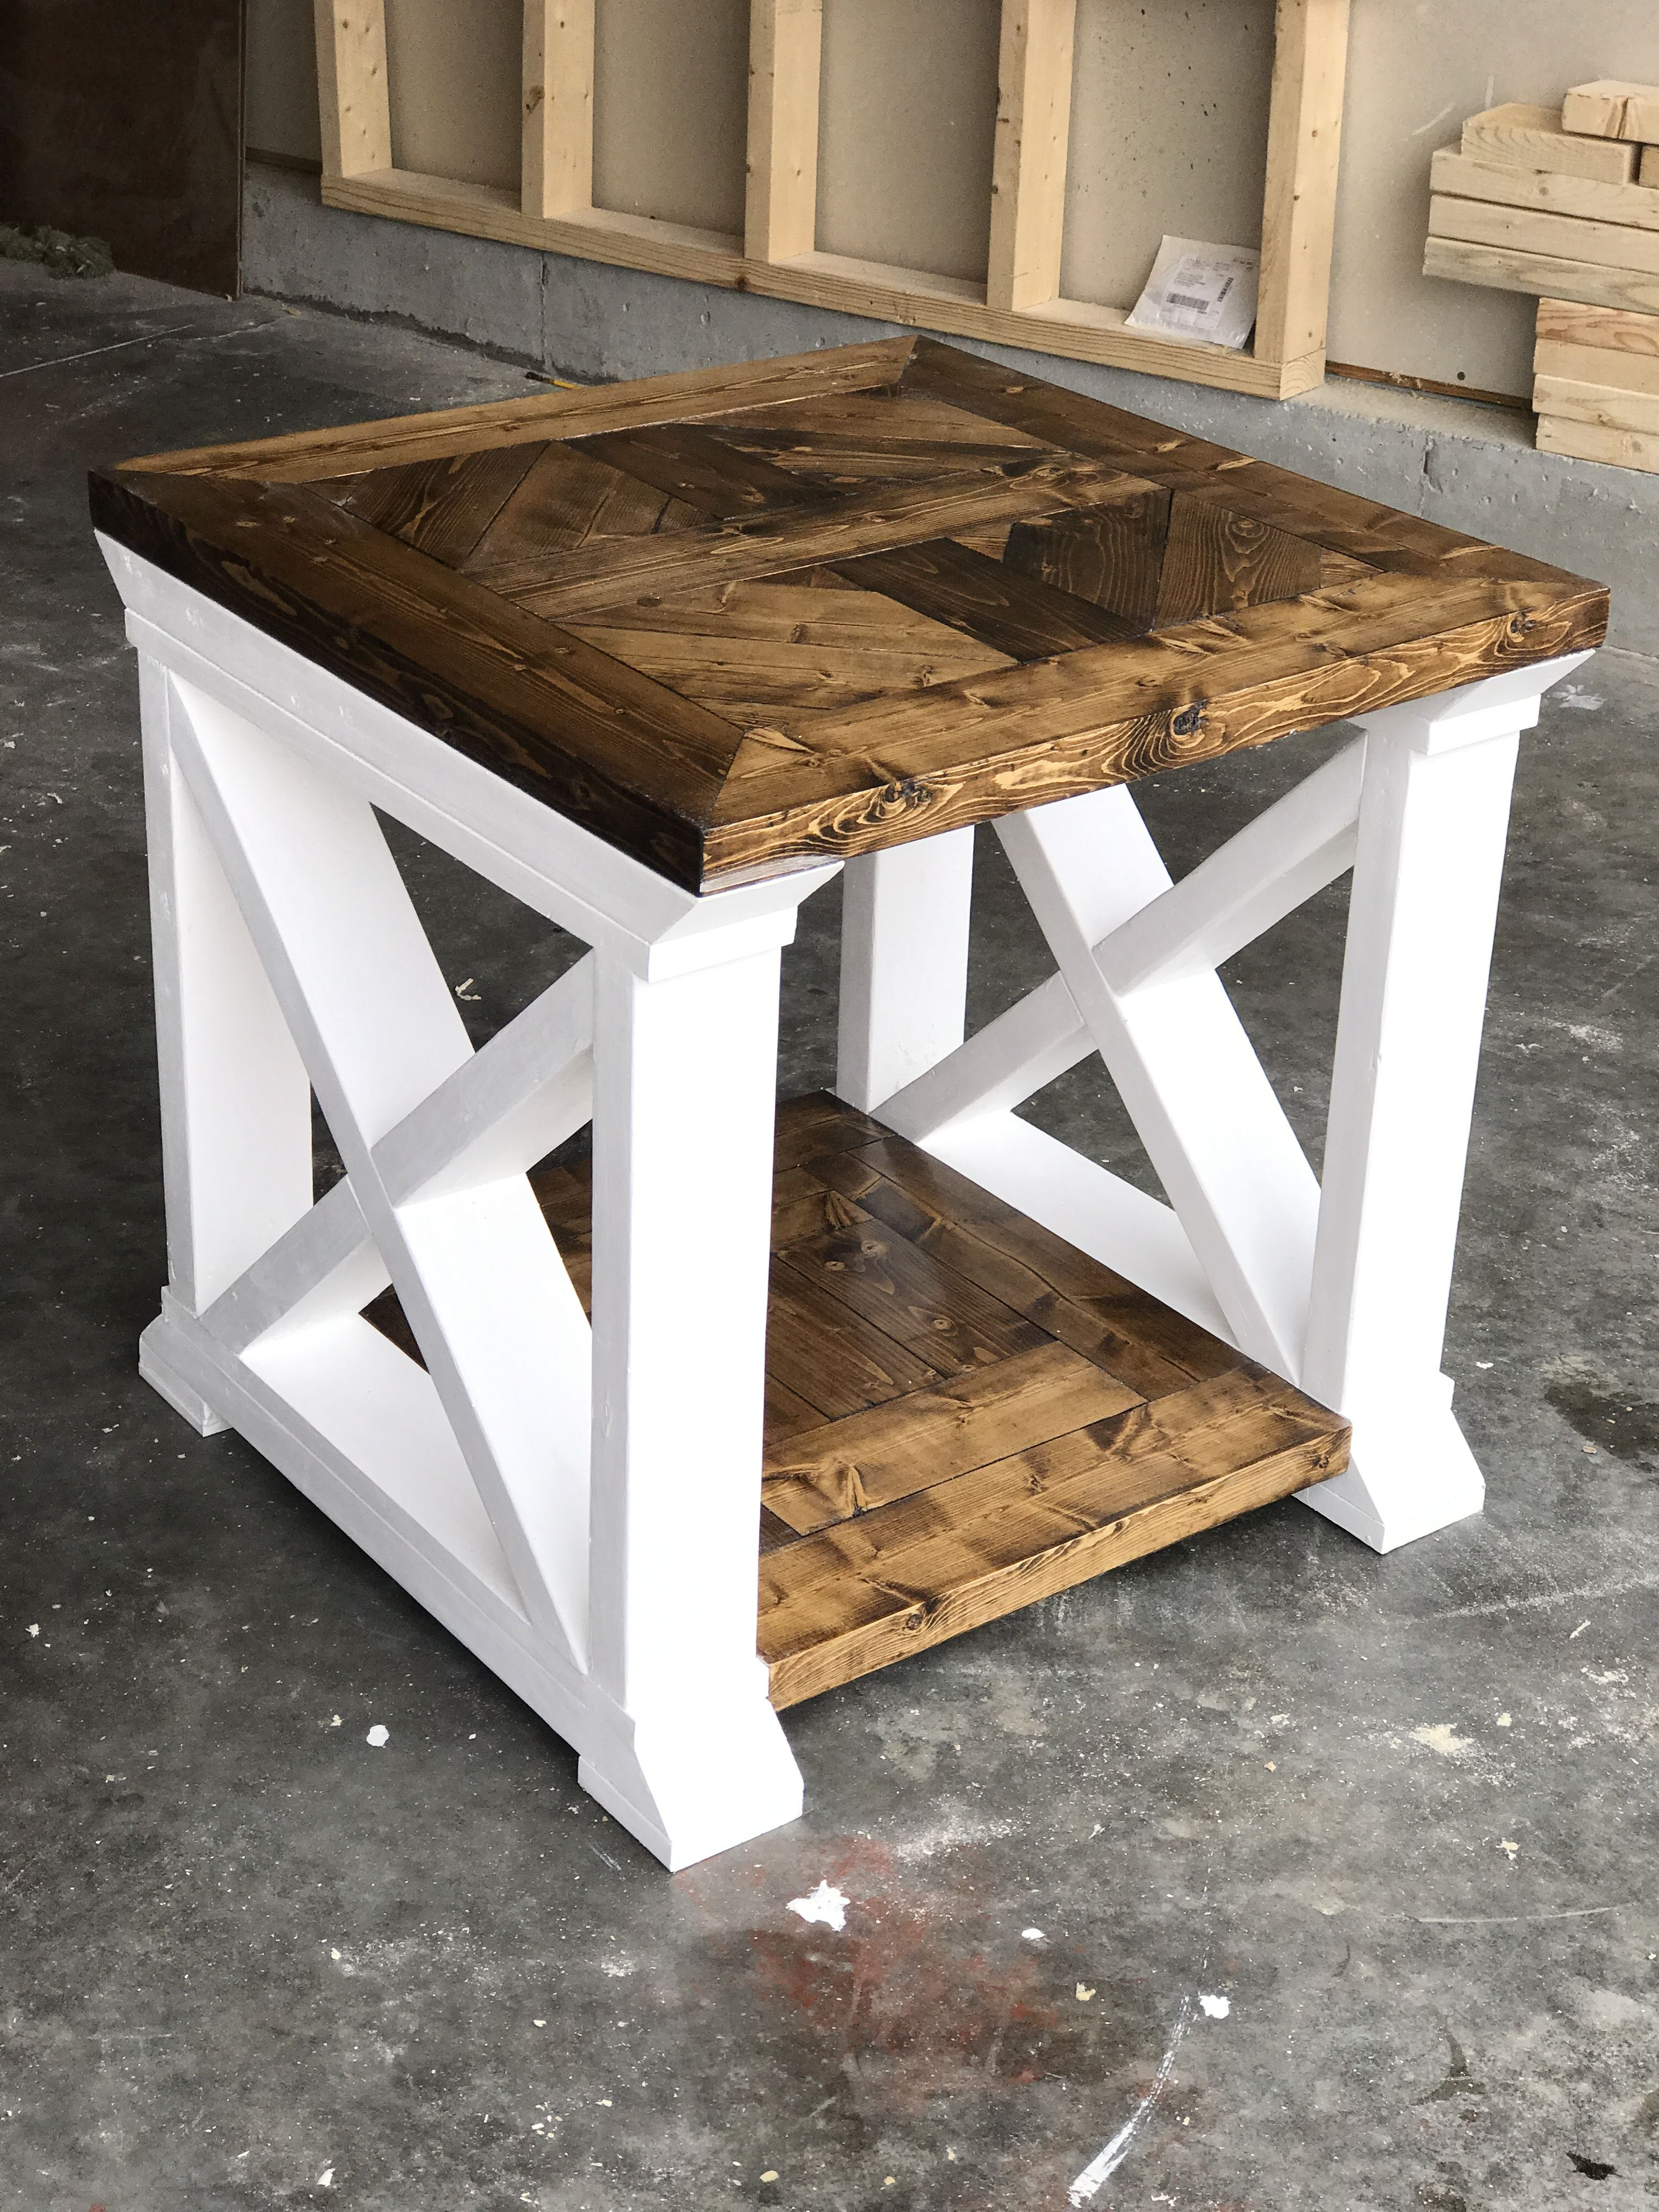 Diy Farm House Coffee Table Made Completely Out Of 2x4 S Woodworking Furniture Plans Wood Table Design Diy Coffee Table